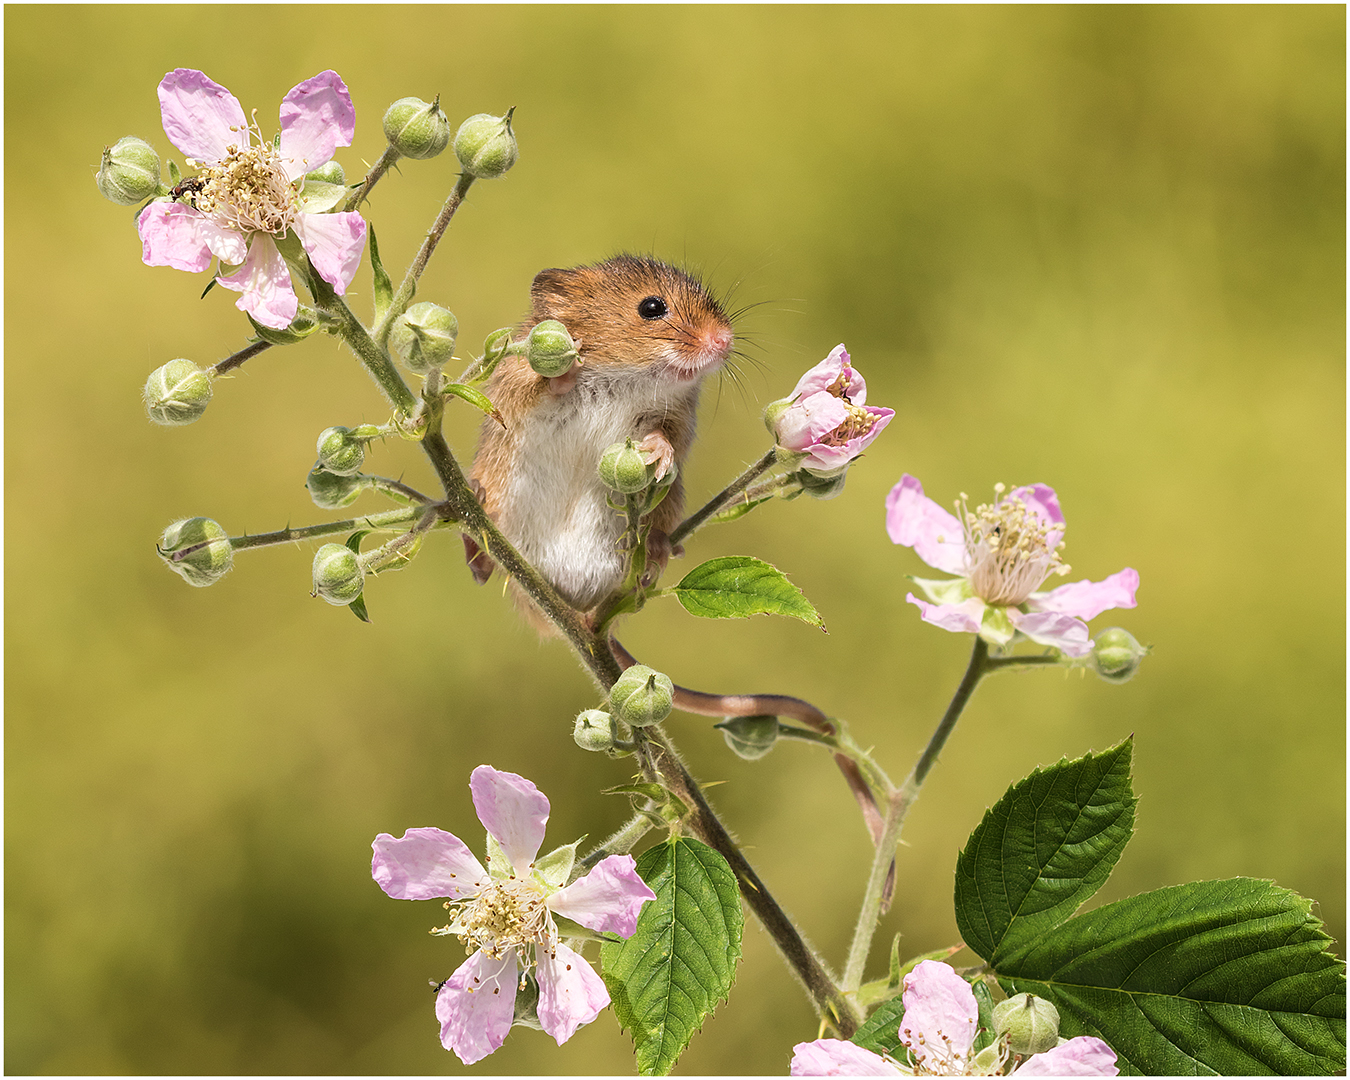 Harvest Mouse on Bramble